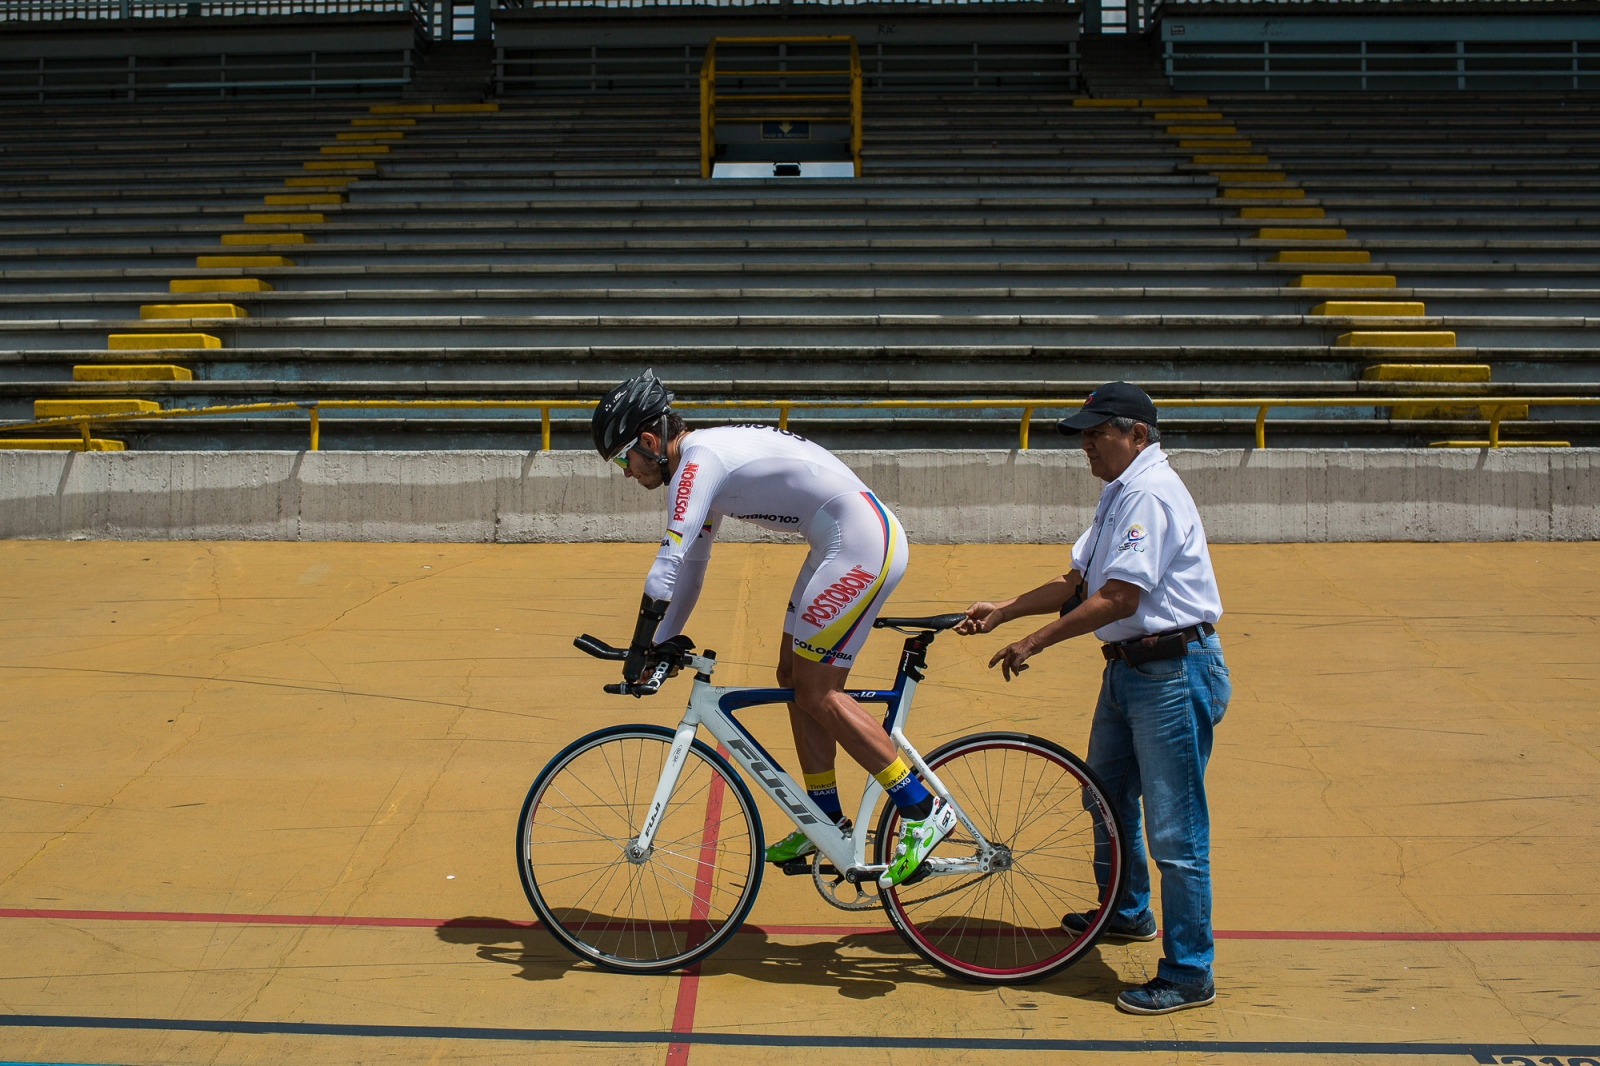 Edwin Matiz, 23, gets ready to start the counter clock training, while his coach Tulio Comcel holds the bicycle on Salitre Sports Complex, Bogotá, 8th June, 2016.